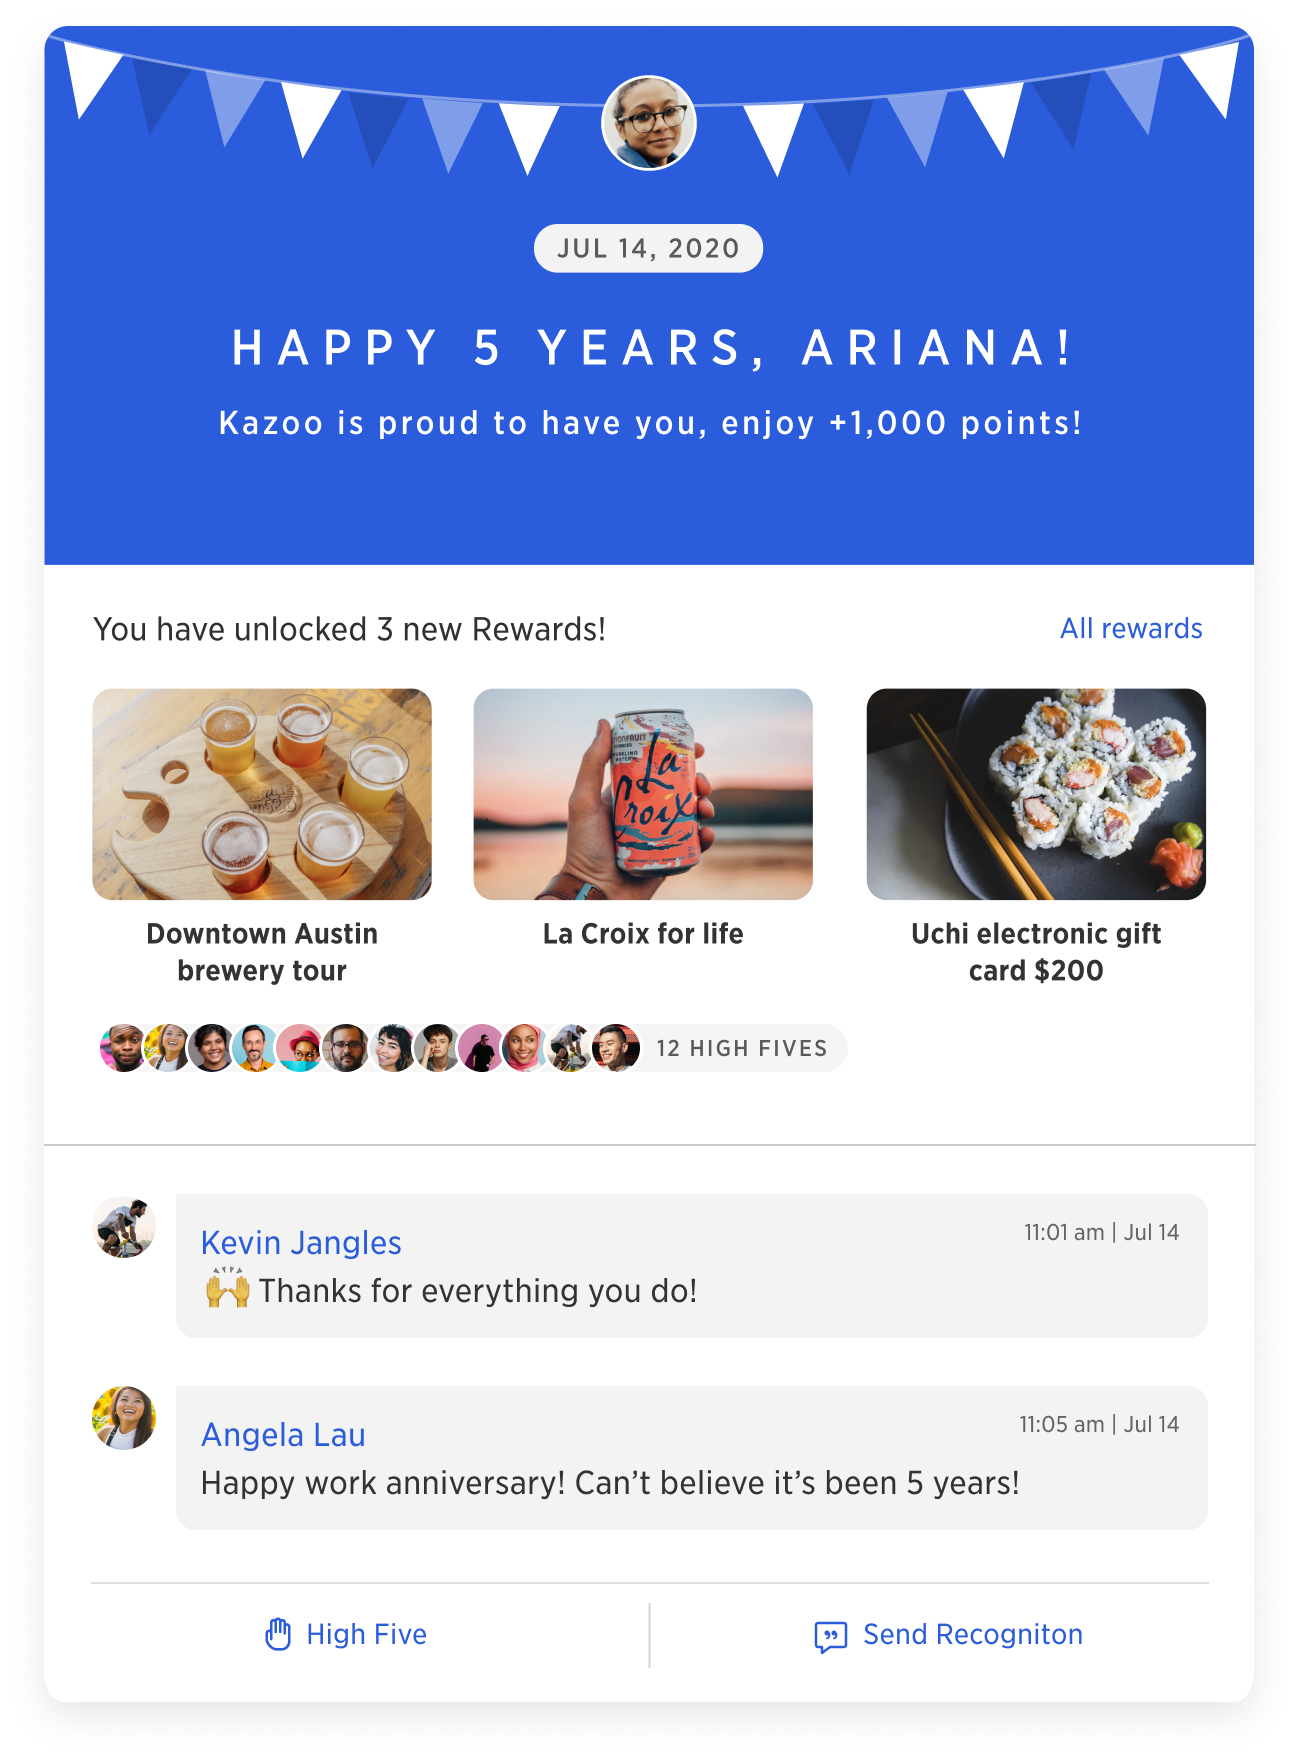 Automated celebration recognitions ensure employees feel extra appreciated on their special days. Whether work anniversaries or birthdays, employees can quickly see the number of occasions to celebrate, and can send anniversary or birthday recognitions.